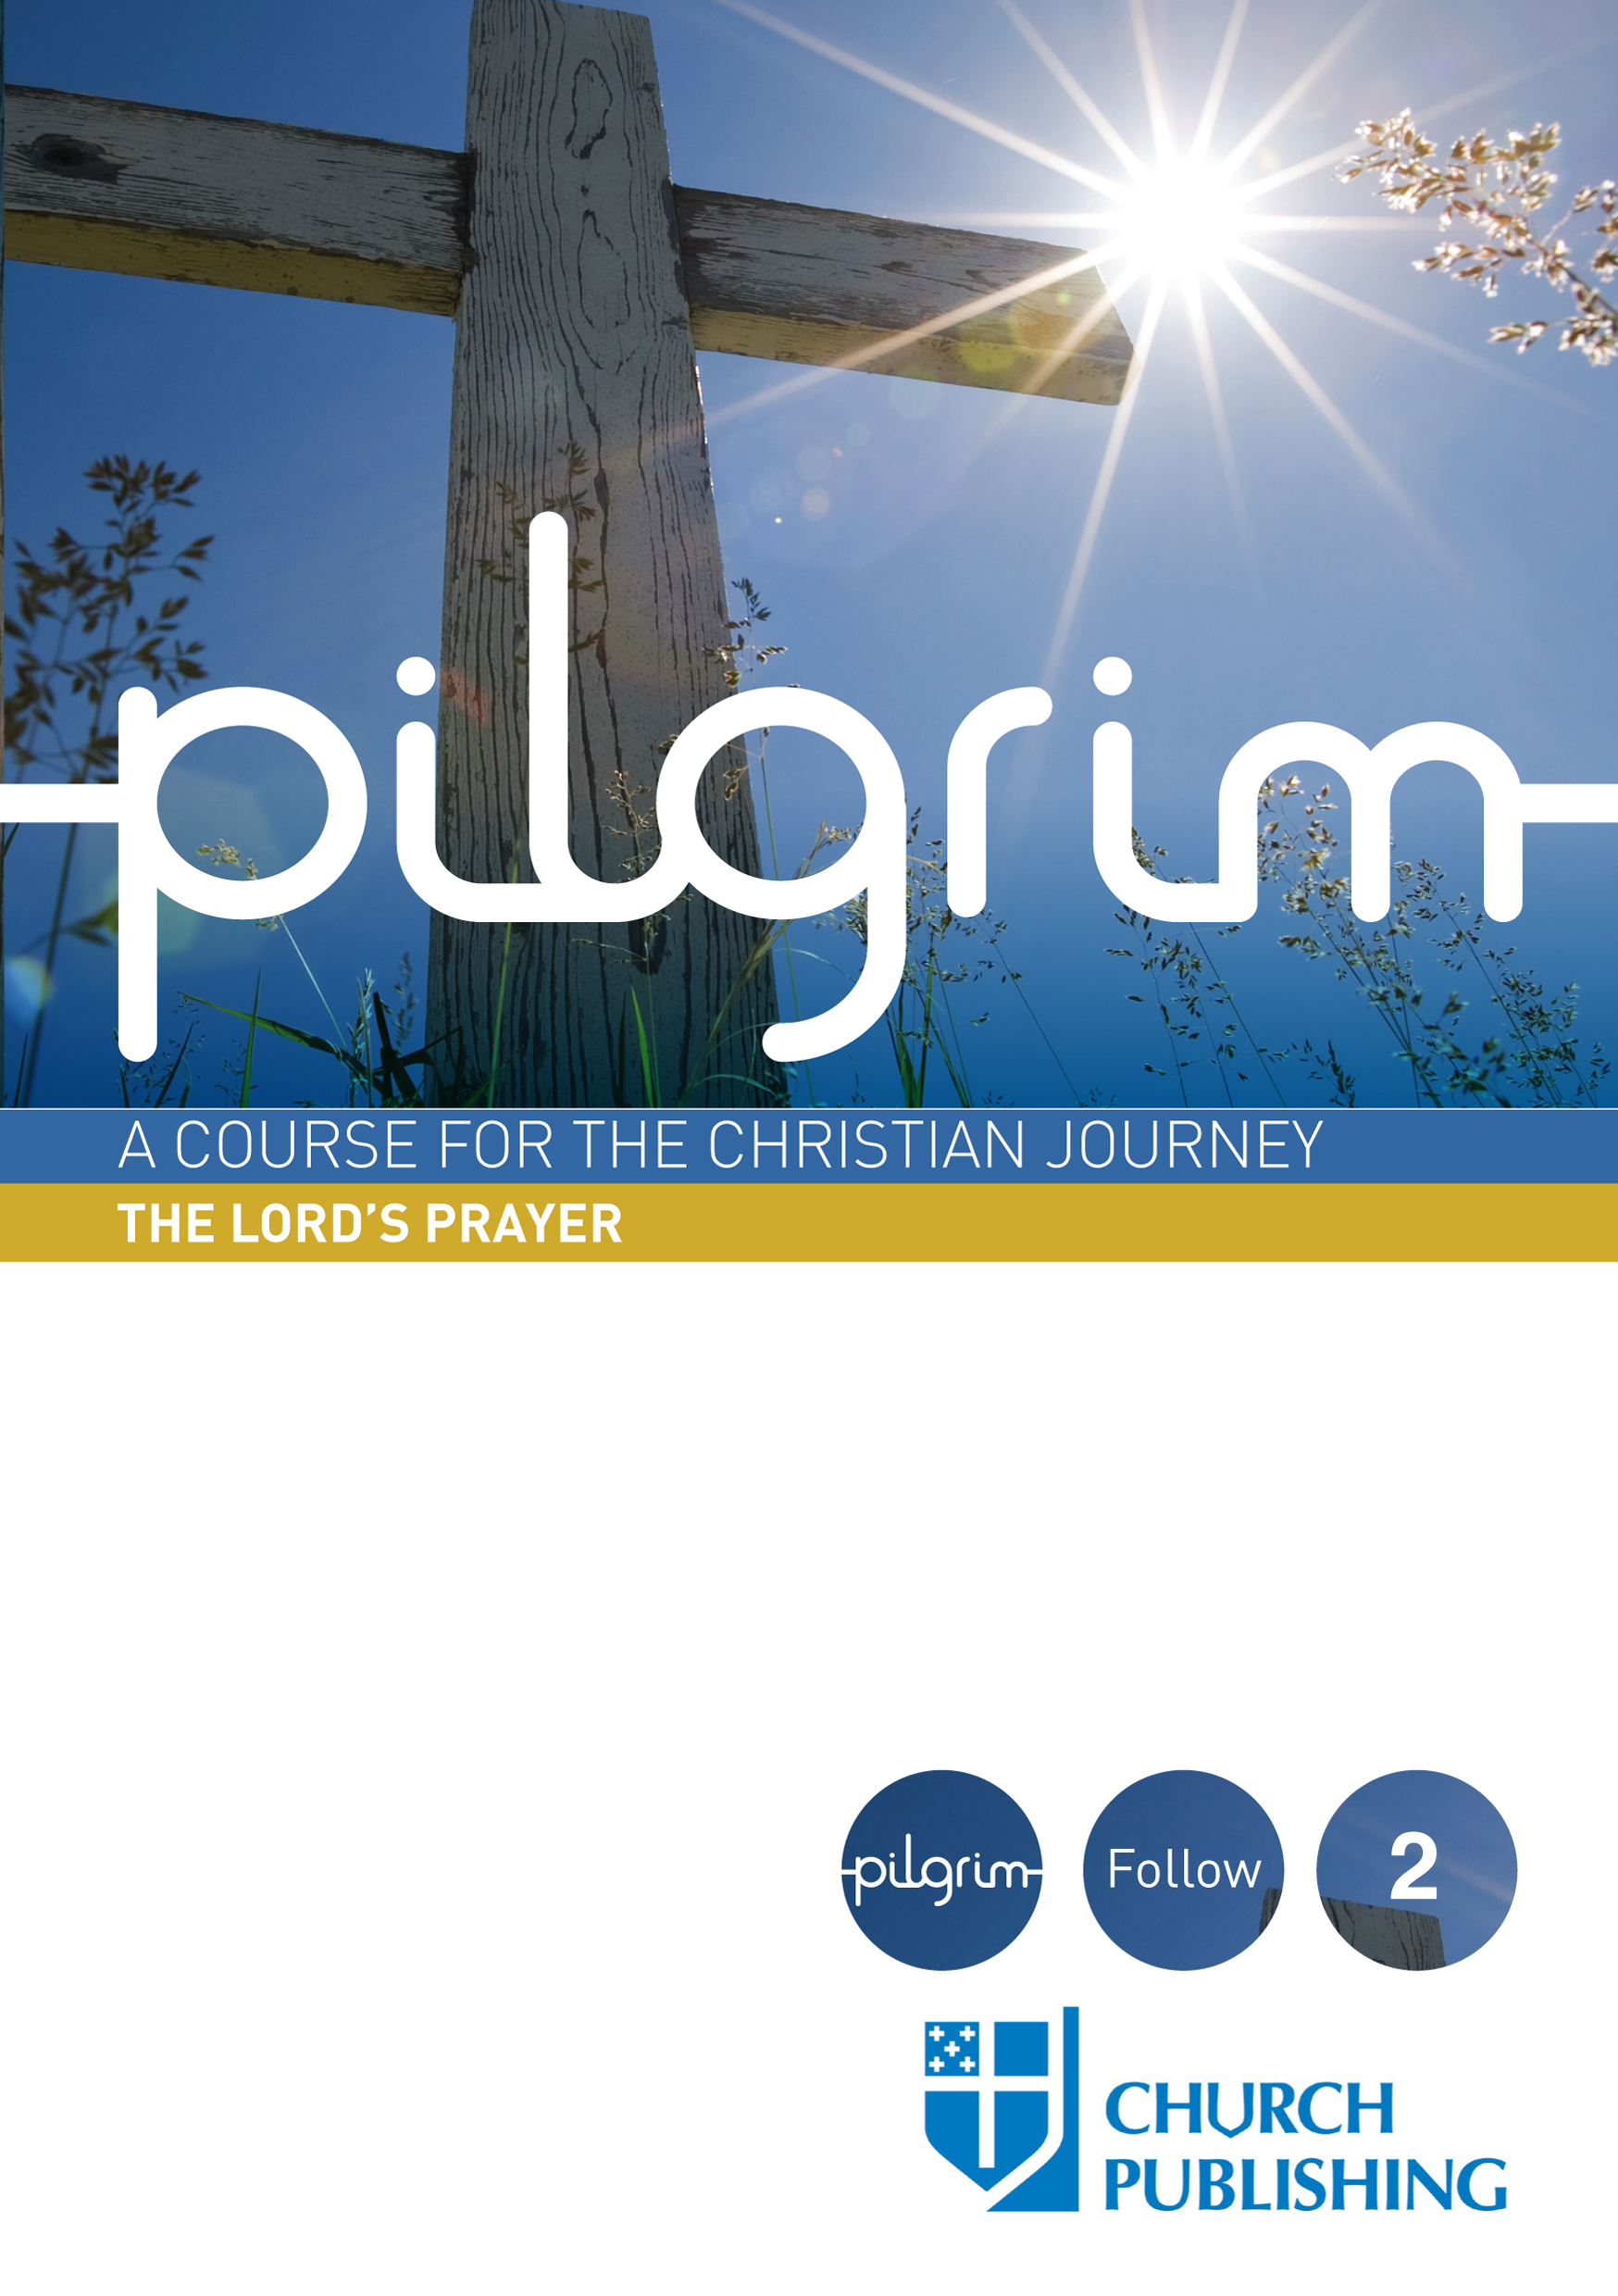 churchpublishing org pilgrim the lord u0027s prayer